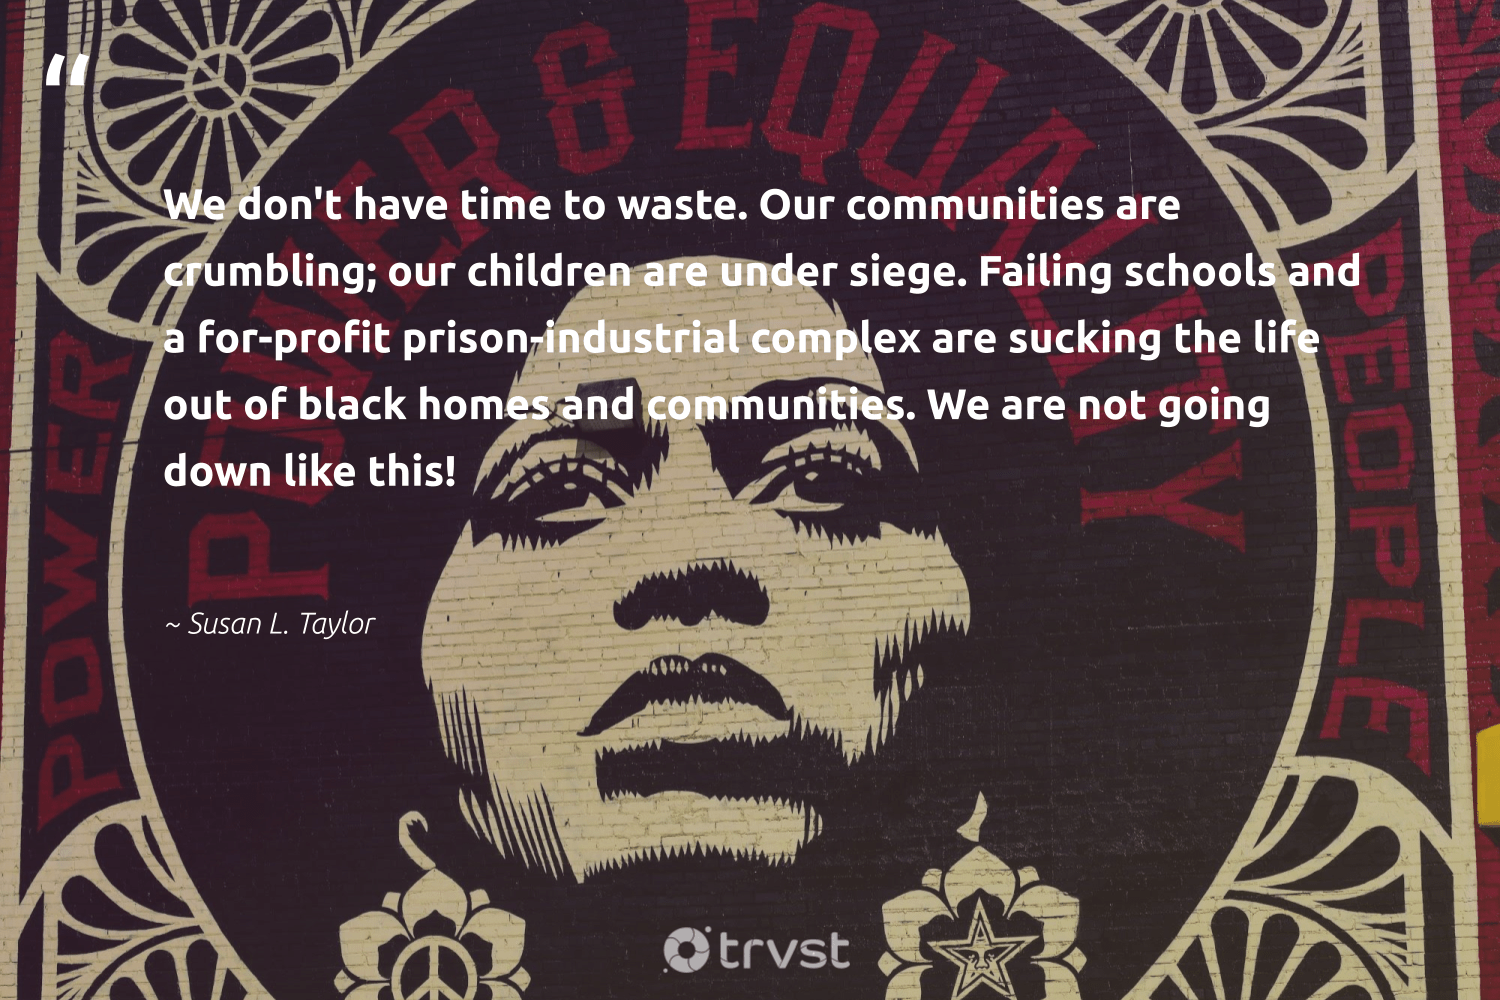 """We don't have time to waste. Our communities are crumbling; our children are under siege. Failing schools and a for-profit prison-industrial complex are sucking the life out of black homes and communities. We are not going down like this!""  - Susan L. Taylor #trvst #quotes #waste #communities #children #socialgood #socialimpact #weareallone #gogreen #giveback #collectiveaction #makeadifference"